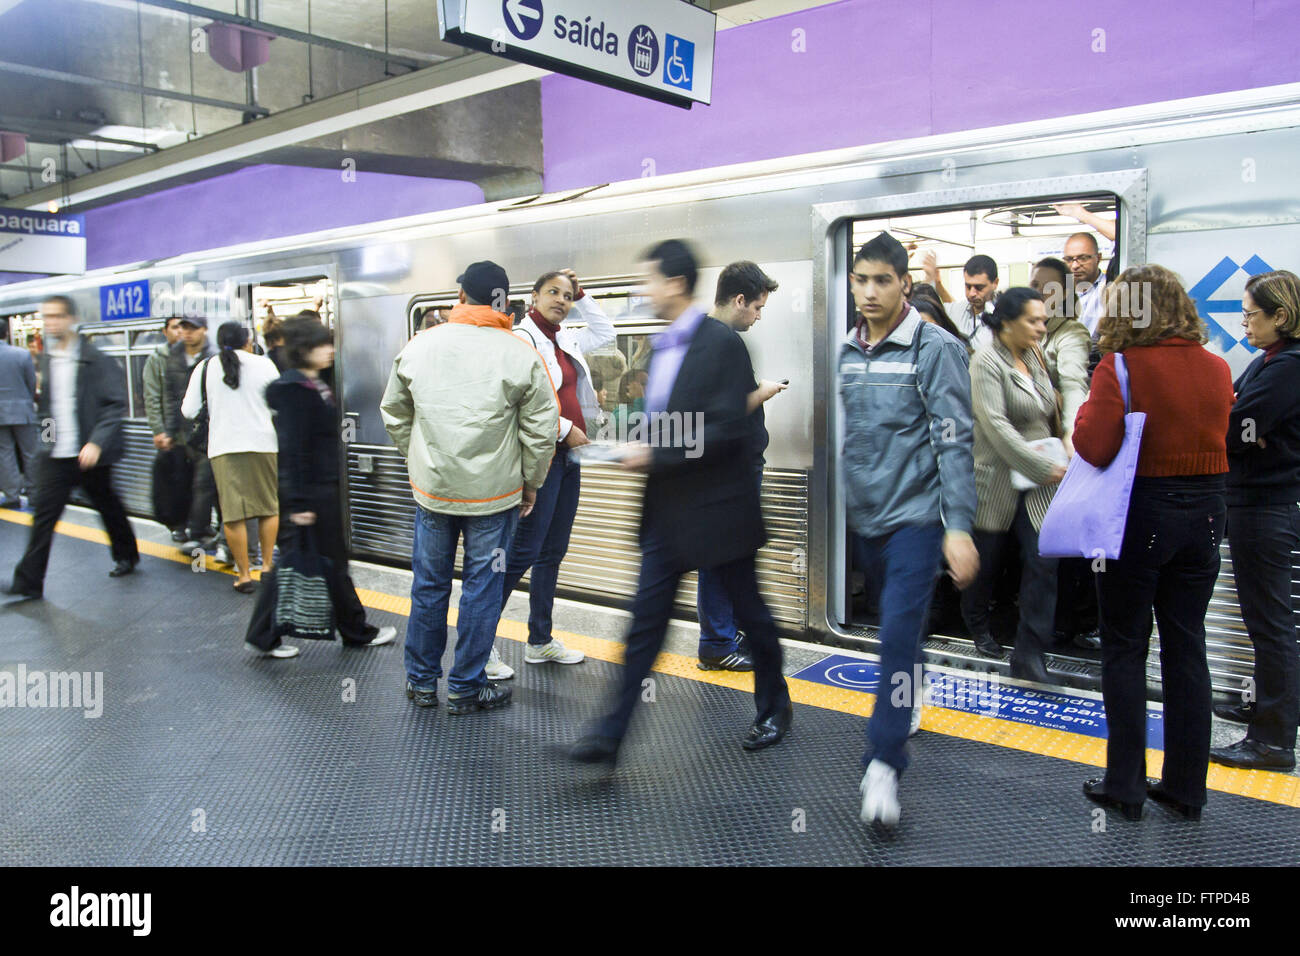 Embarkation and disembarkation of passengers in Paraiso Station of Metro Line 1 Blue - Stock Image